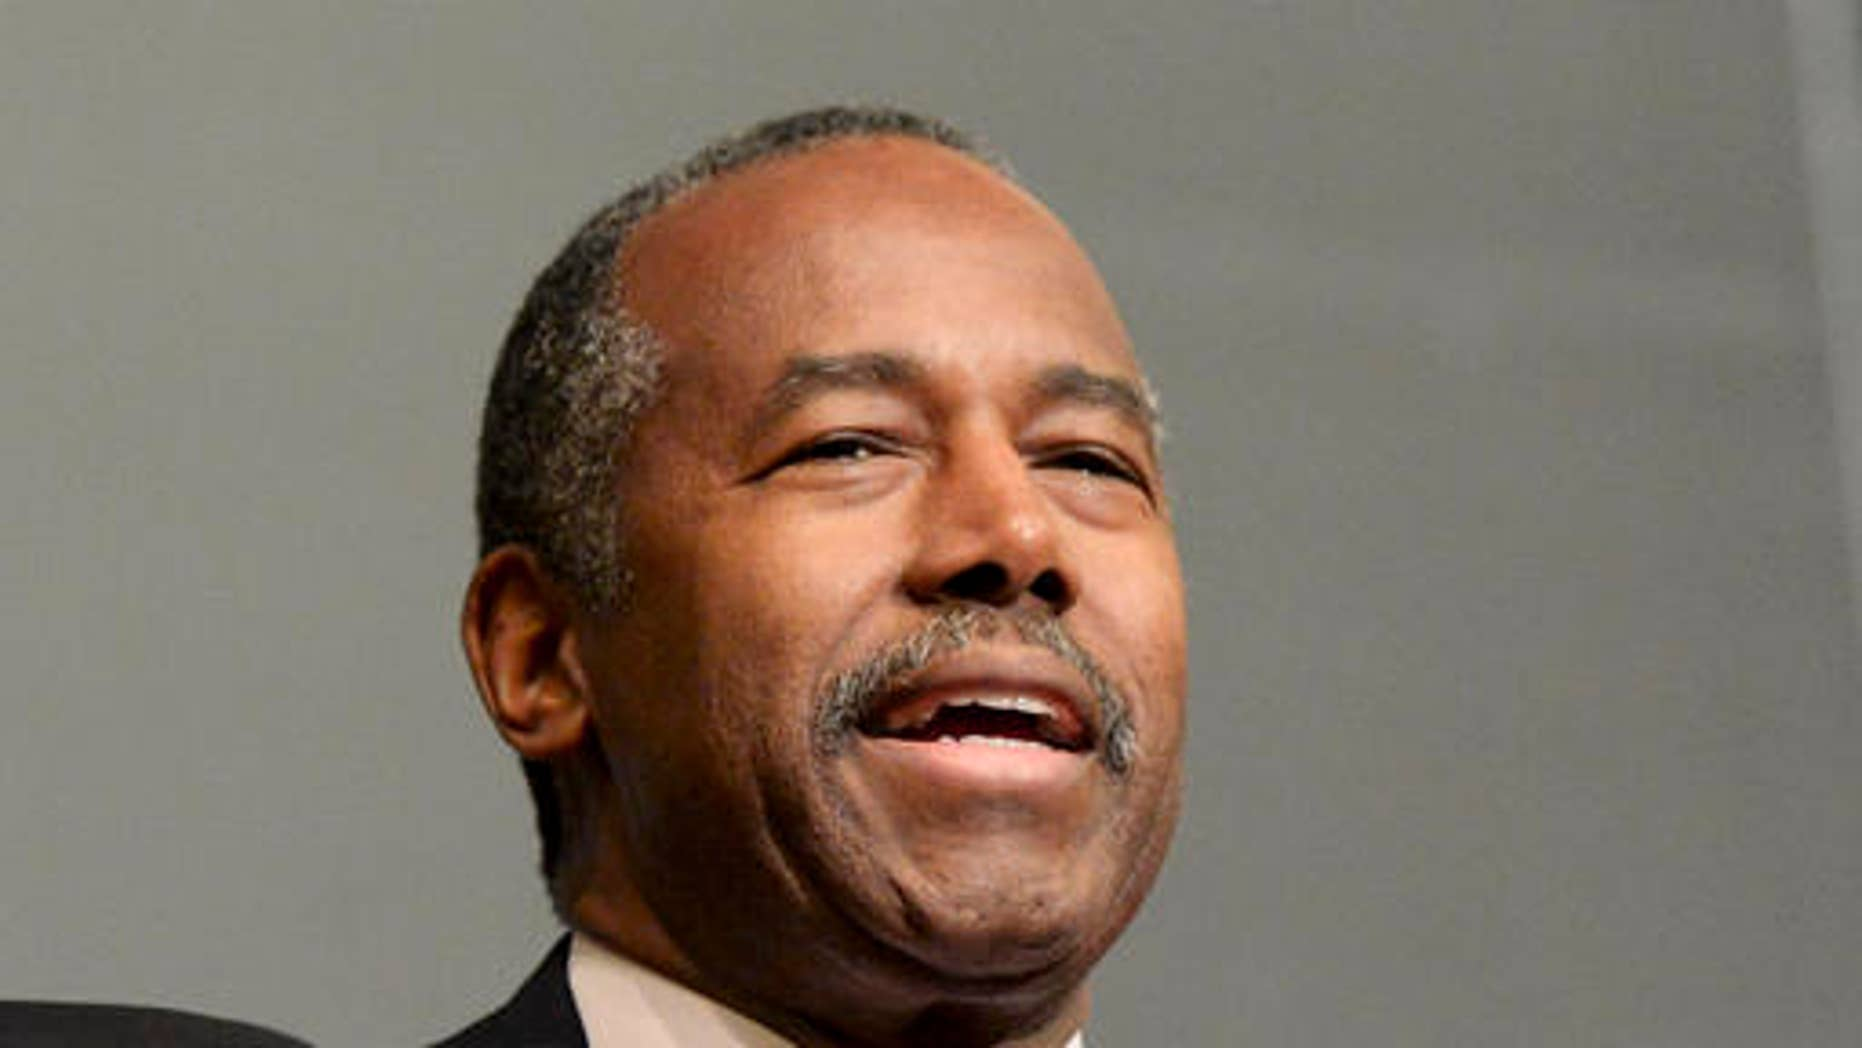 Ben Carson, speaks at Yale, as a guest of the William F. Buckley Jr. Program, in New Haven, Conn. in December.